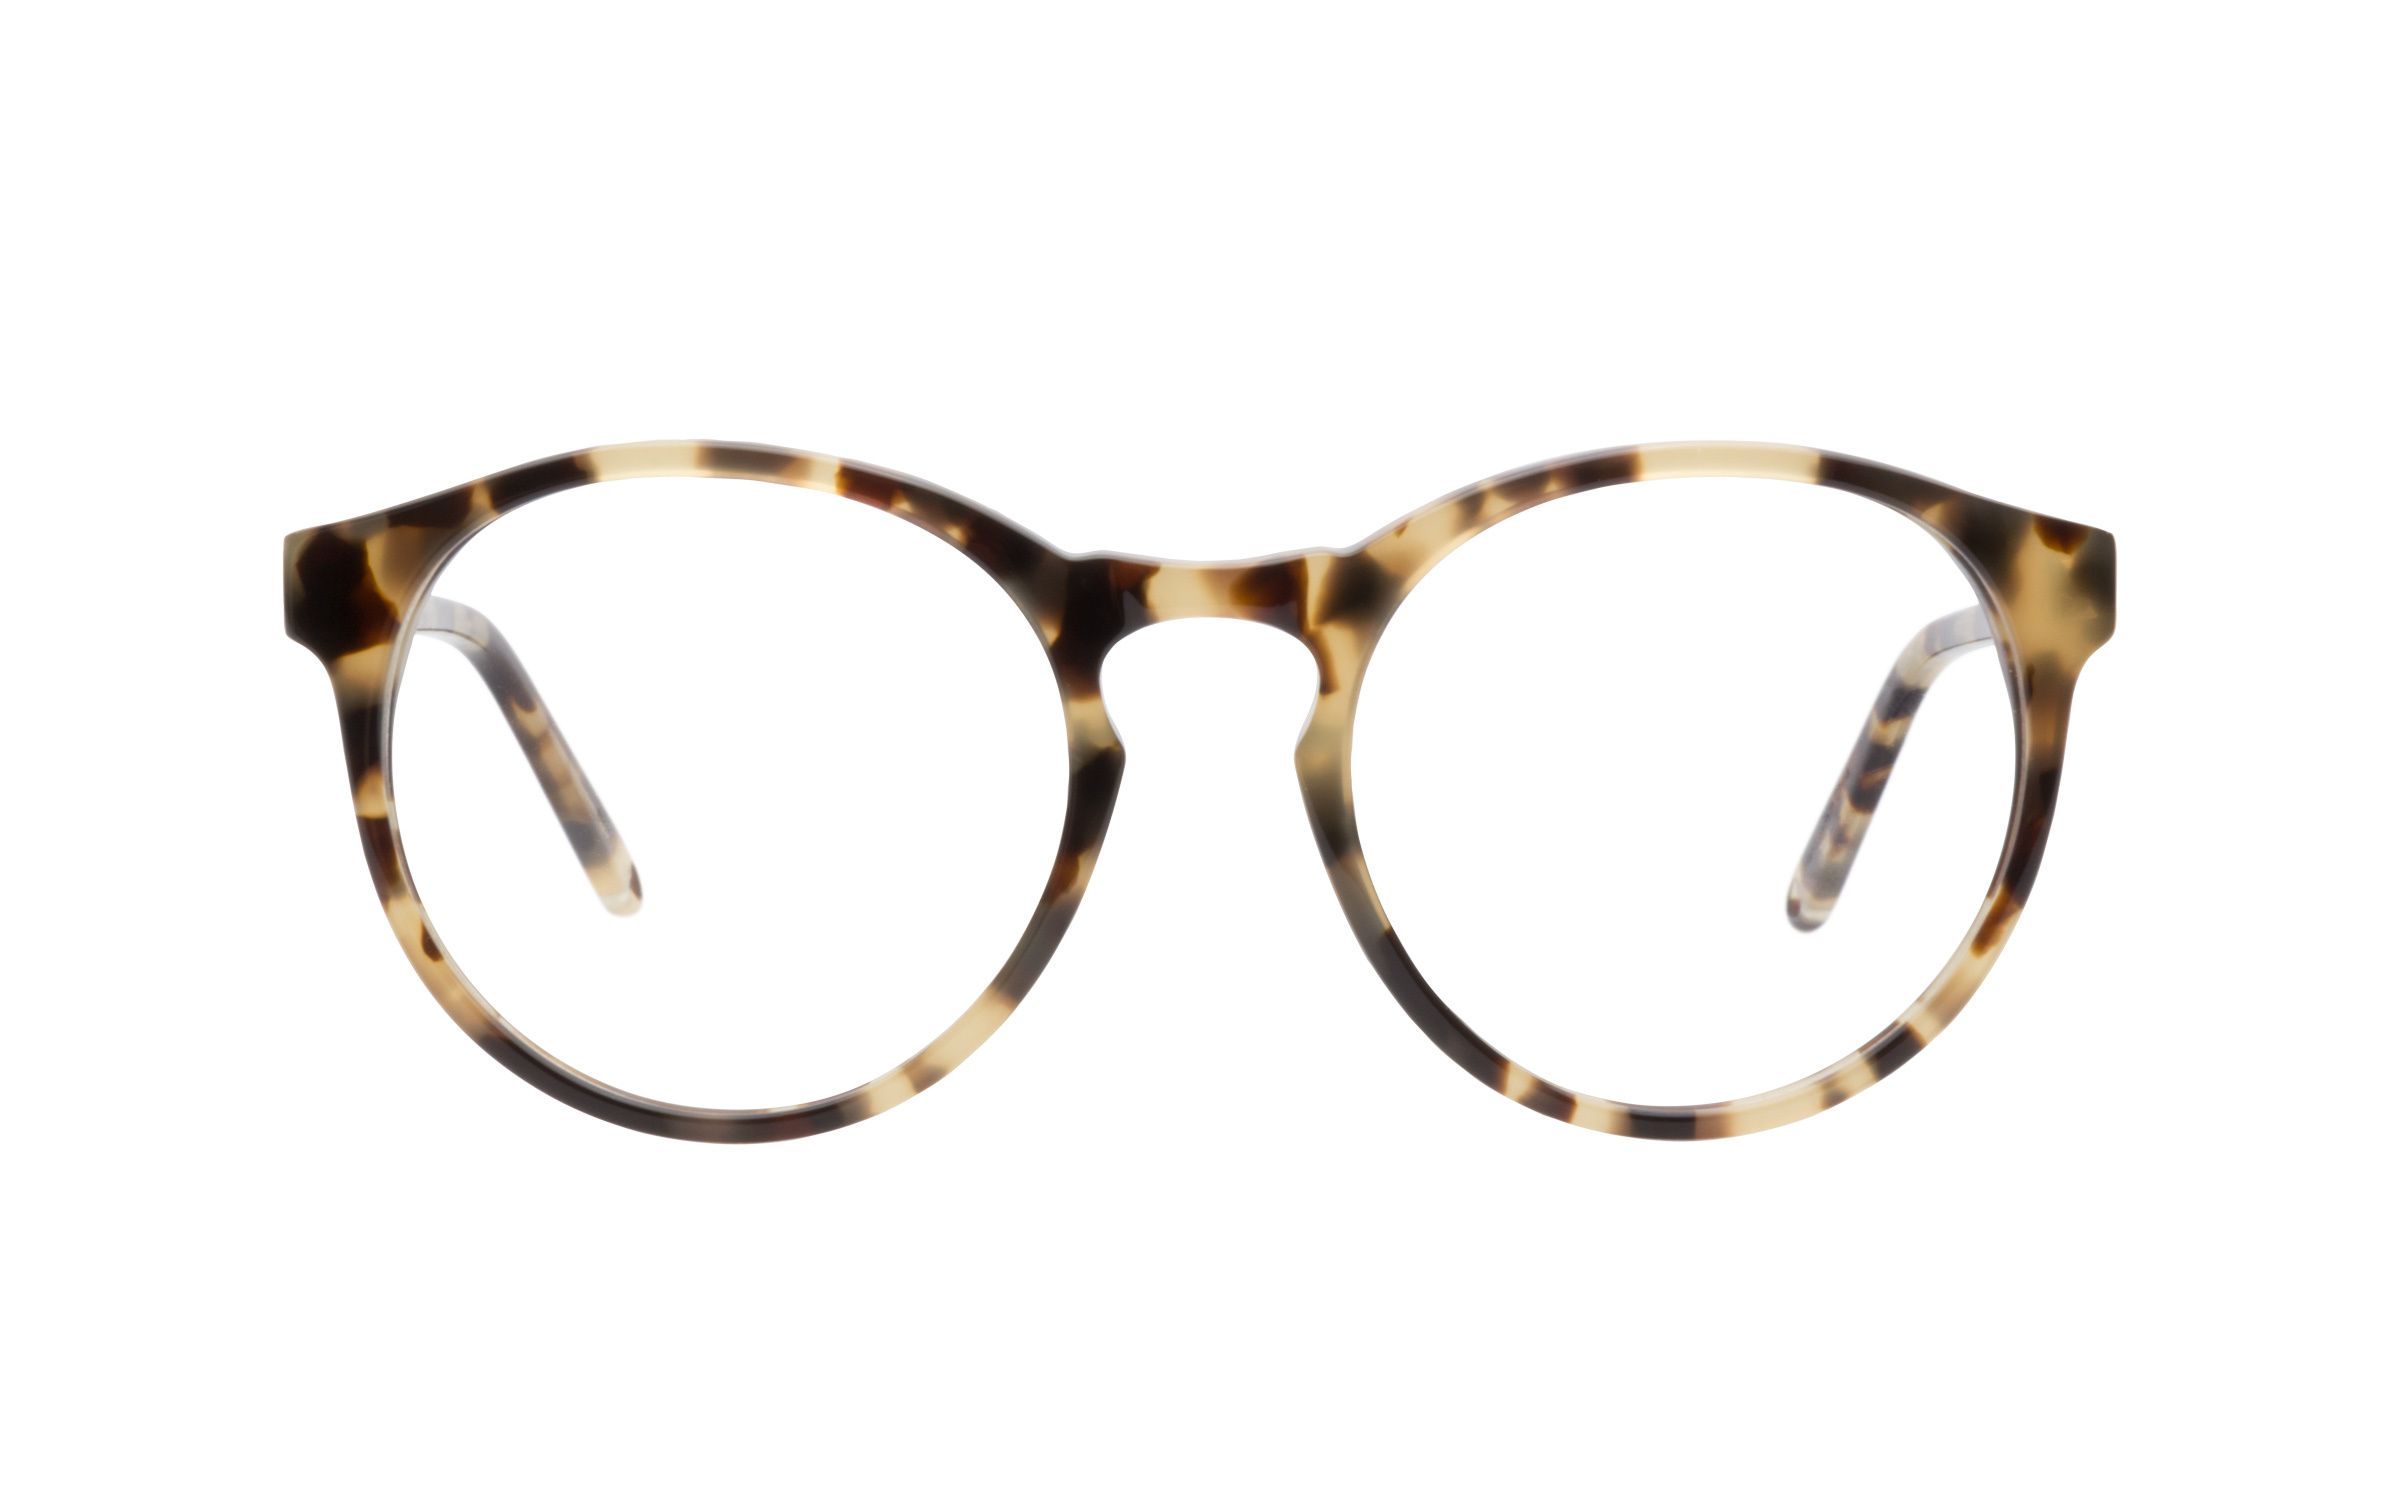 Womens_Tokyo_Tortoise_Acetate_Vintage_Love_Glasses__Clearly_Glasses_Online